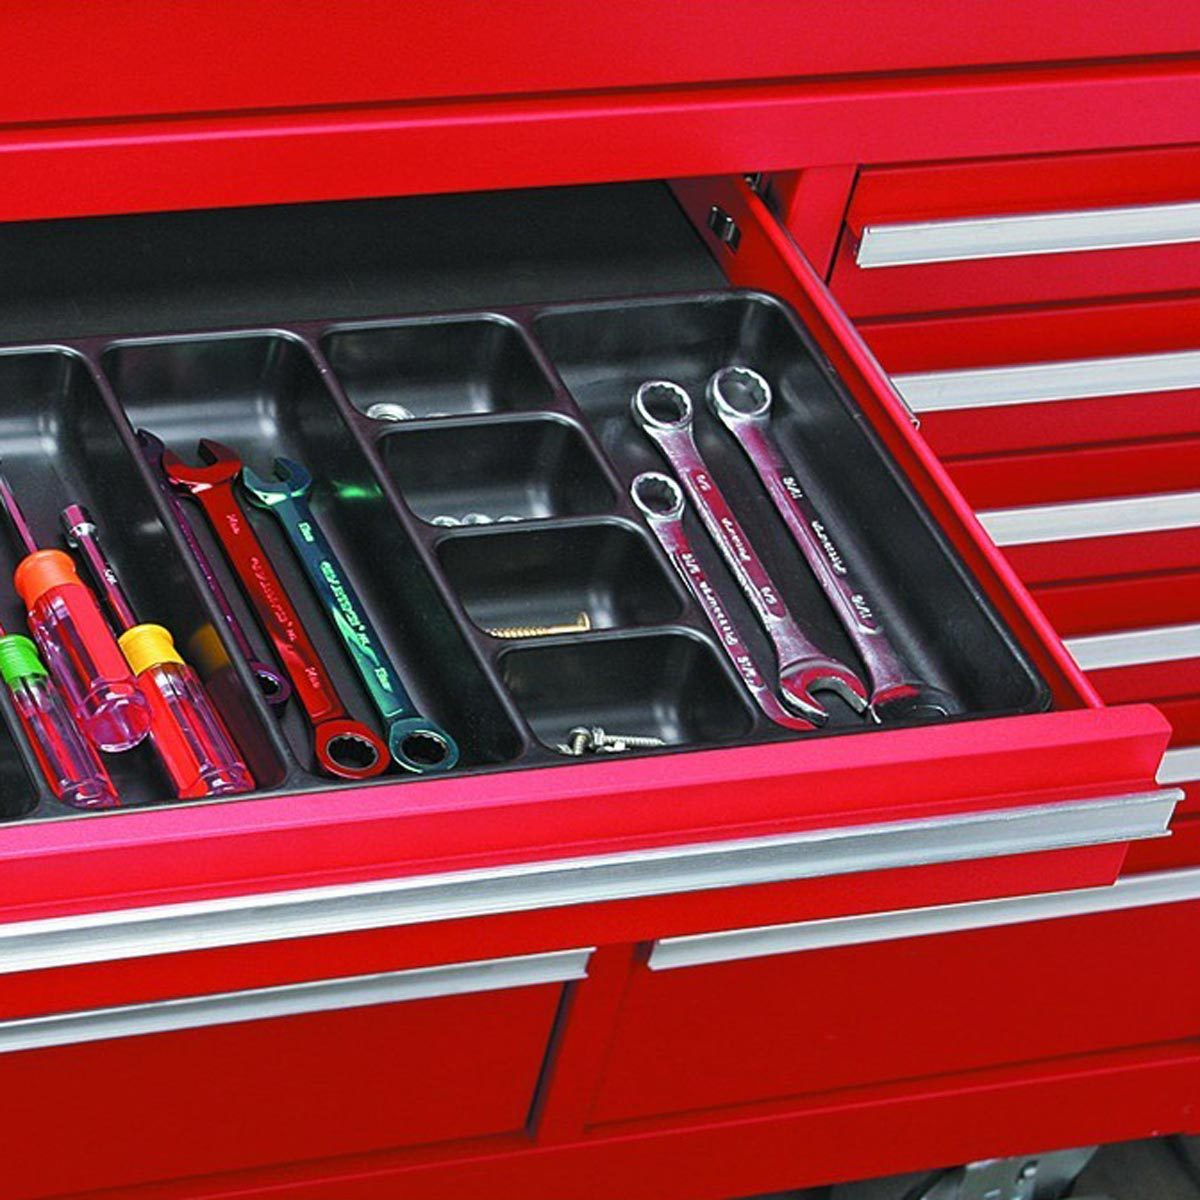 20 Amazing Storage Products From Harbor Freight The